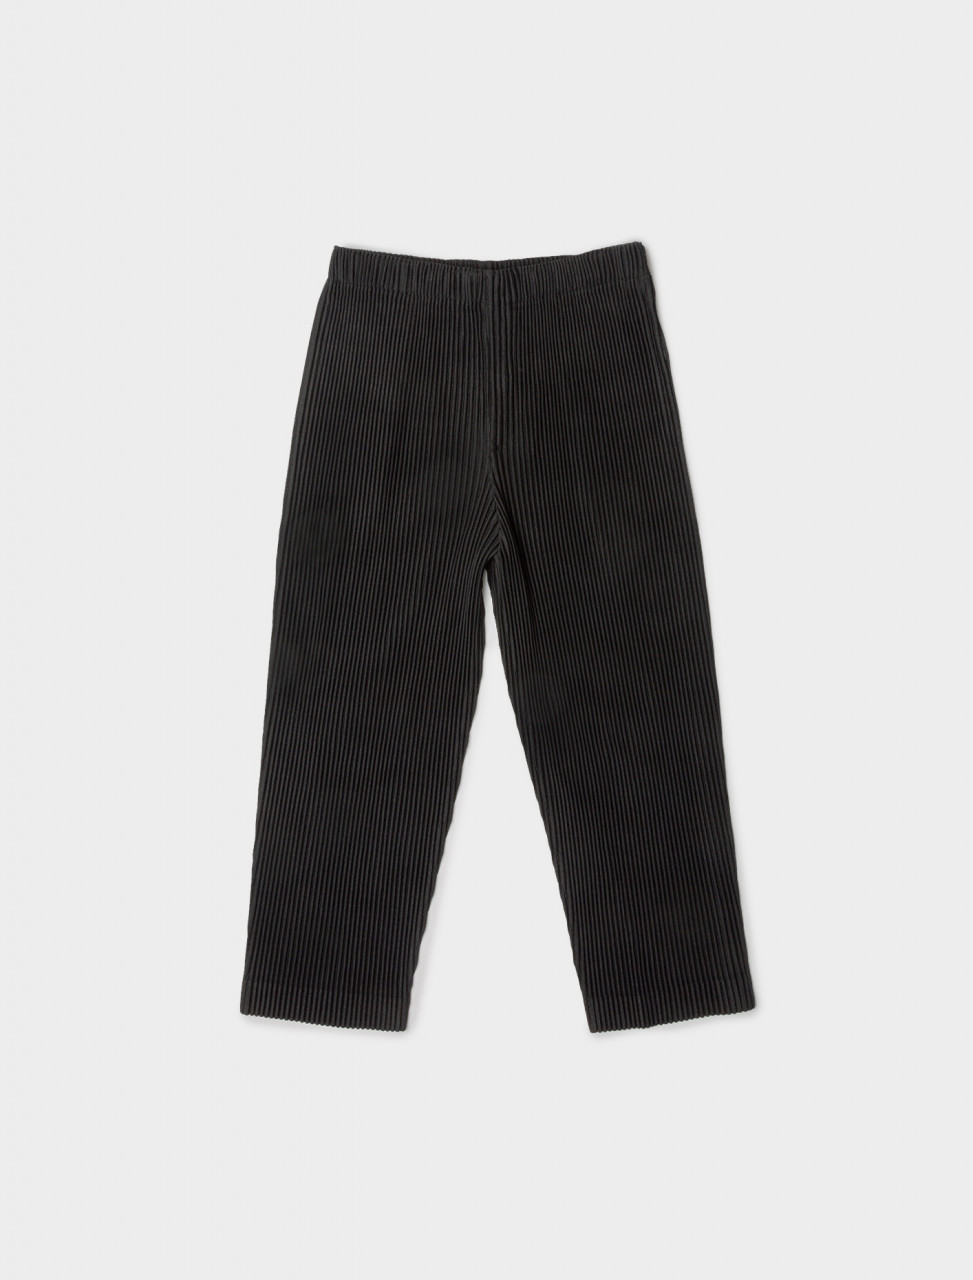 Front view of HOMME PLISSÉ Issey Miyake Cropped Pleated Trouser in Black